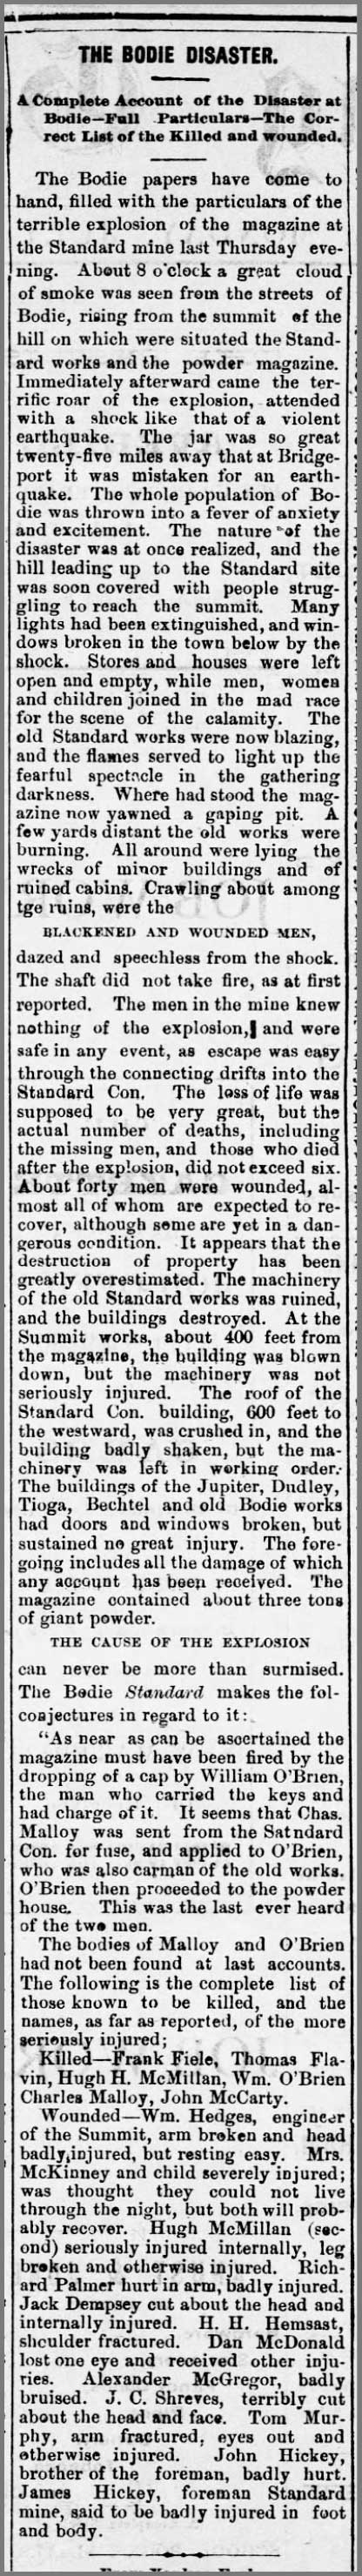 The Bodie Disaster - July 14, 1879 - original article | Bodie.com